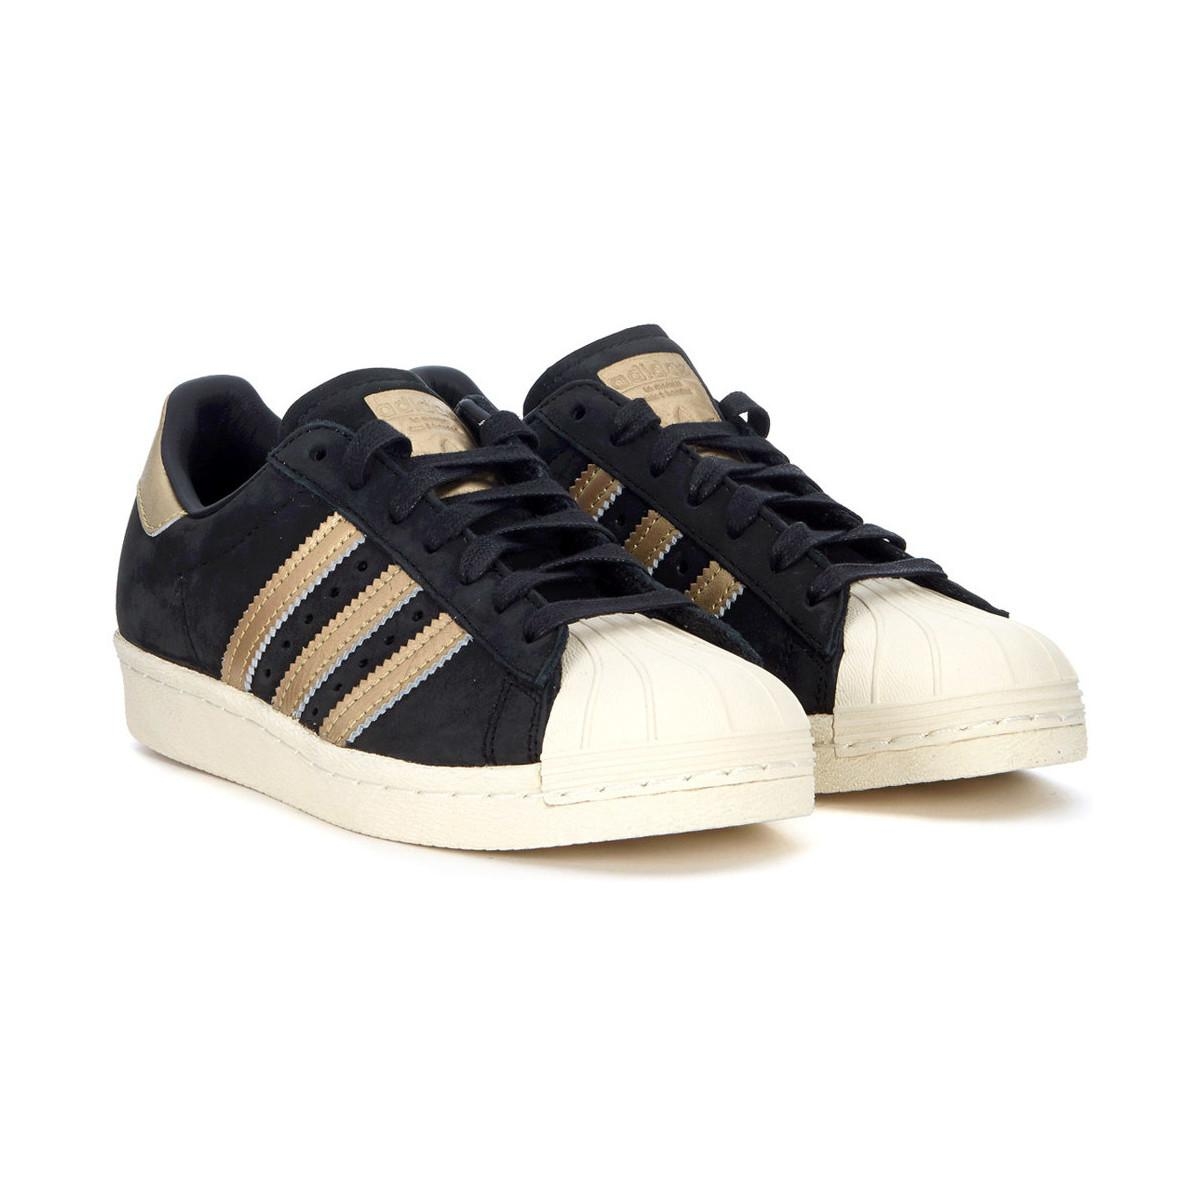 adidas Sneaker Model Superstar 80s In Black Nubuck And Golden Leaf Women's Shoes (trainers) In Black